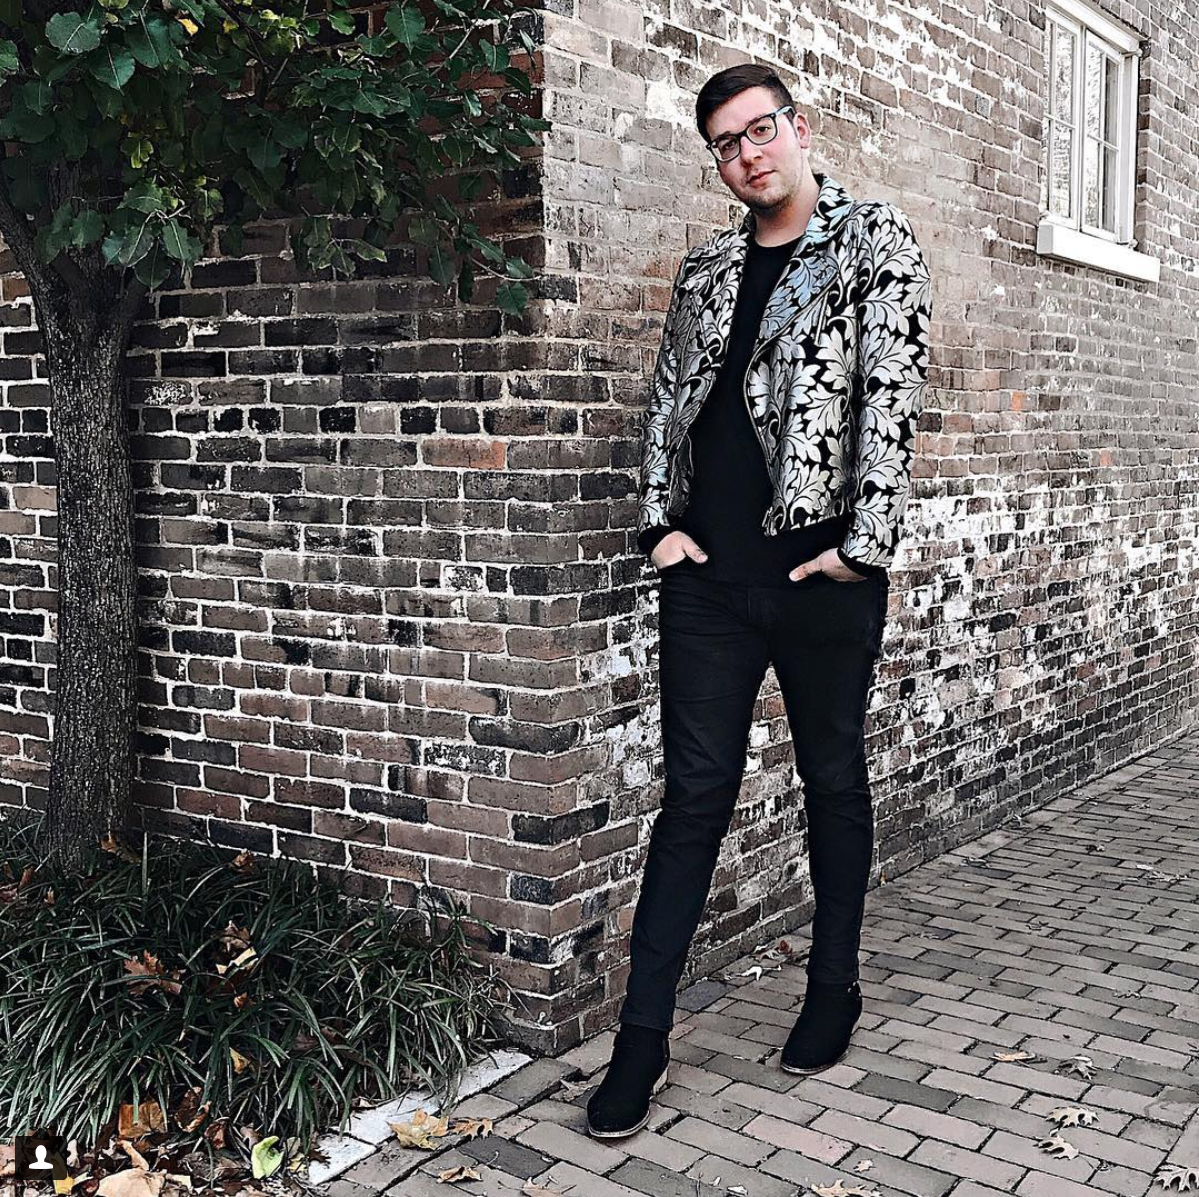 See what we mean? The brocade jacket is positively dreamy. (Image via @austinrutland)<p></p>